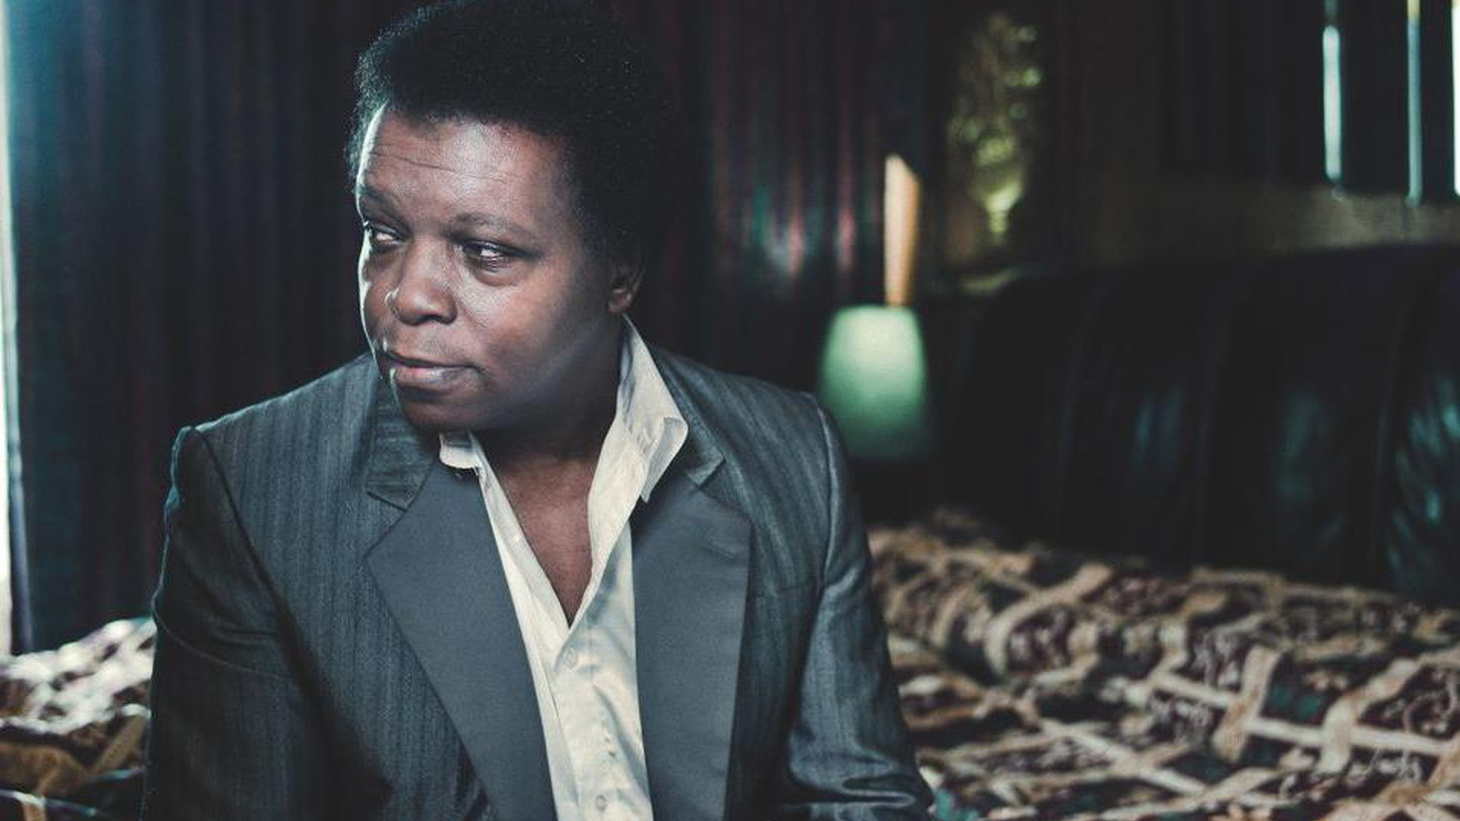 R&B veteran Lee Fields has been in the business for four decades, releasing singles for various labels and touring with bands that laid the foundation of funk...